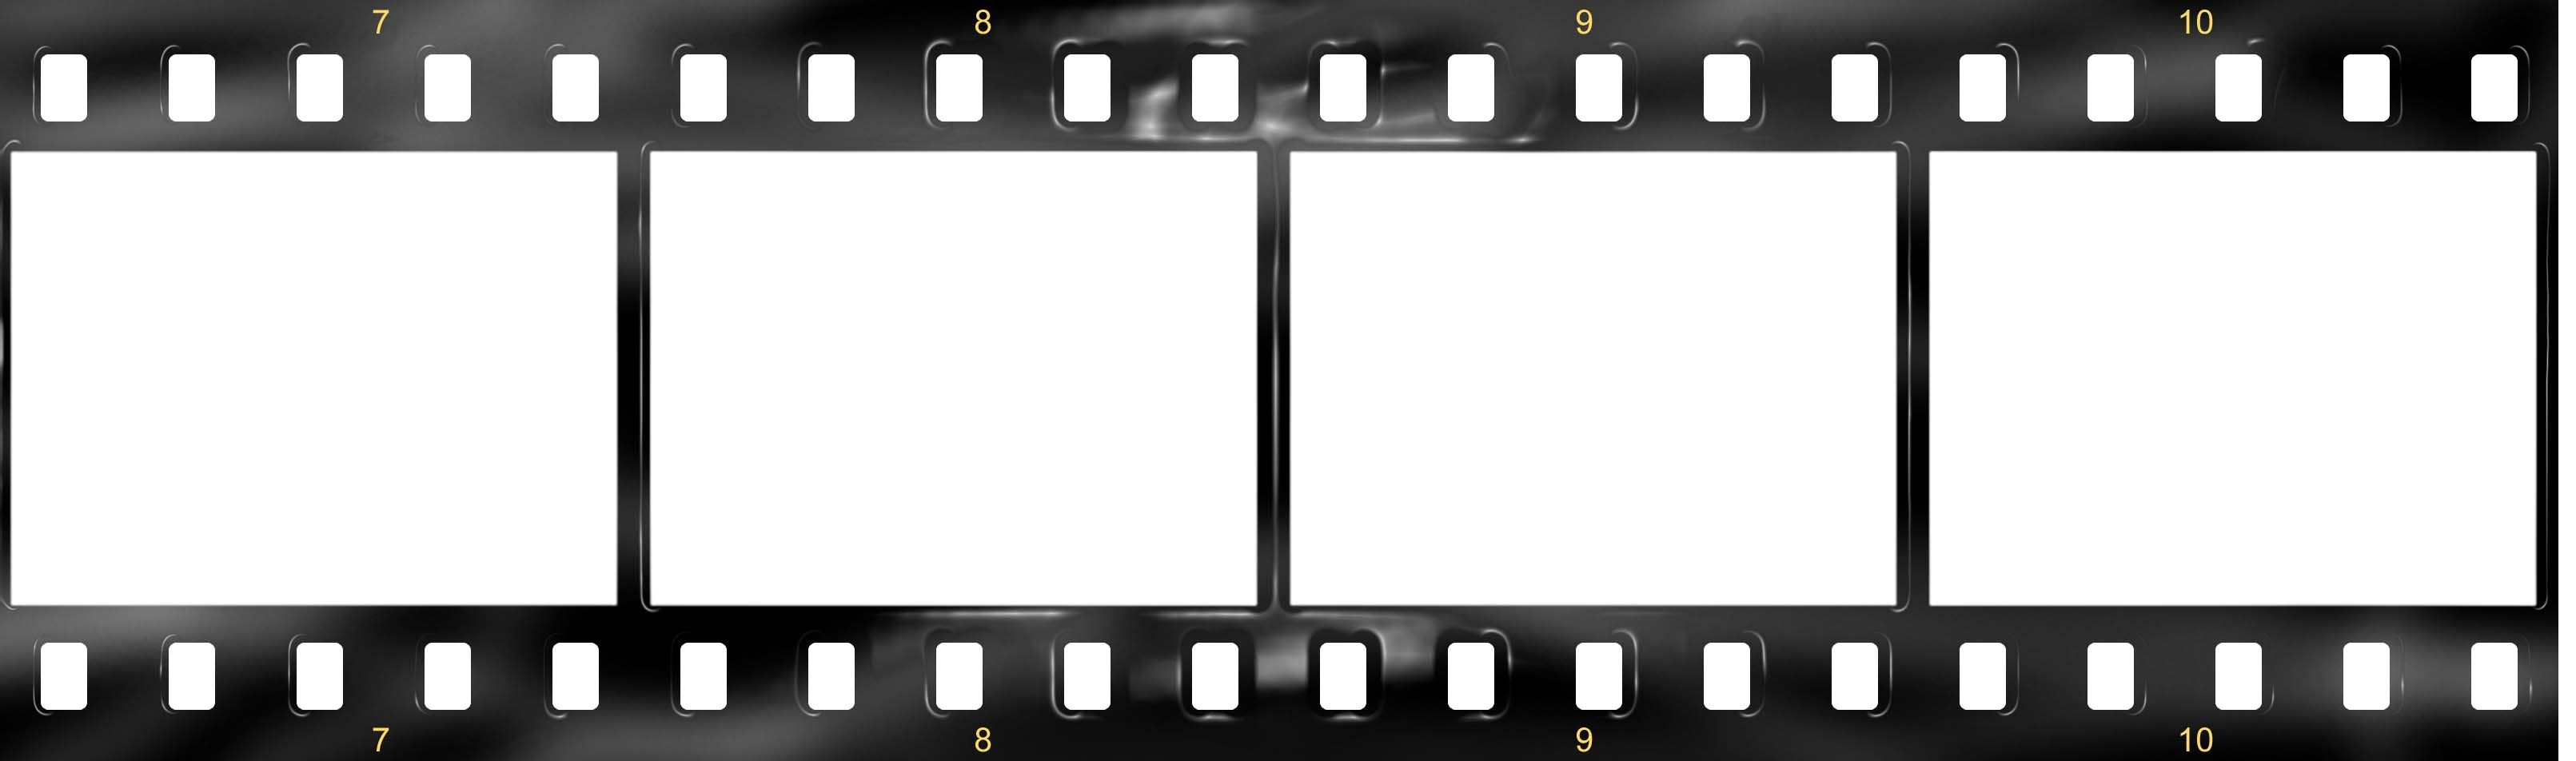 15 film strip template photoshop psd images film strip for Film strip picture template